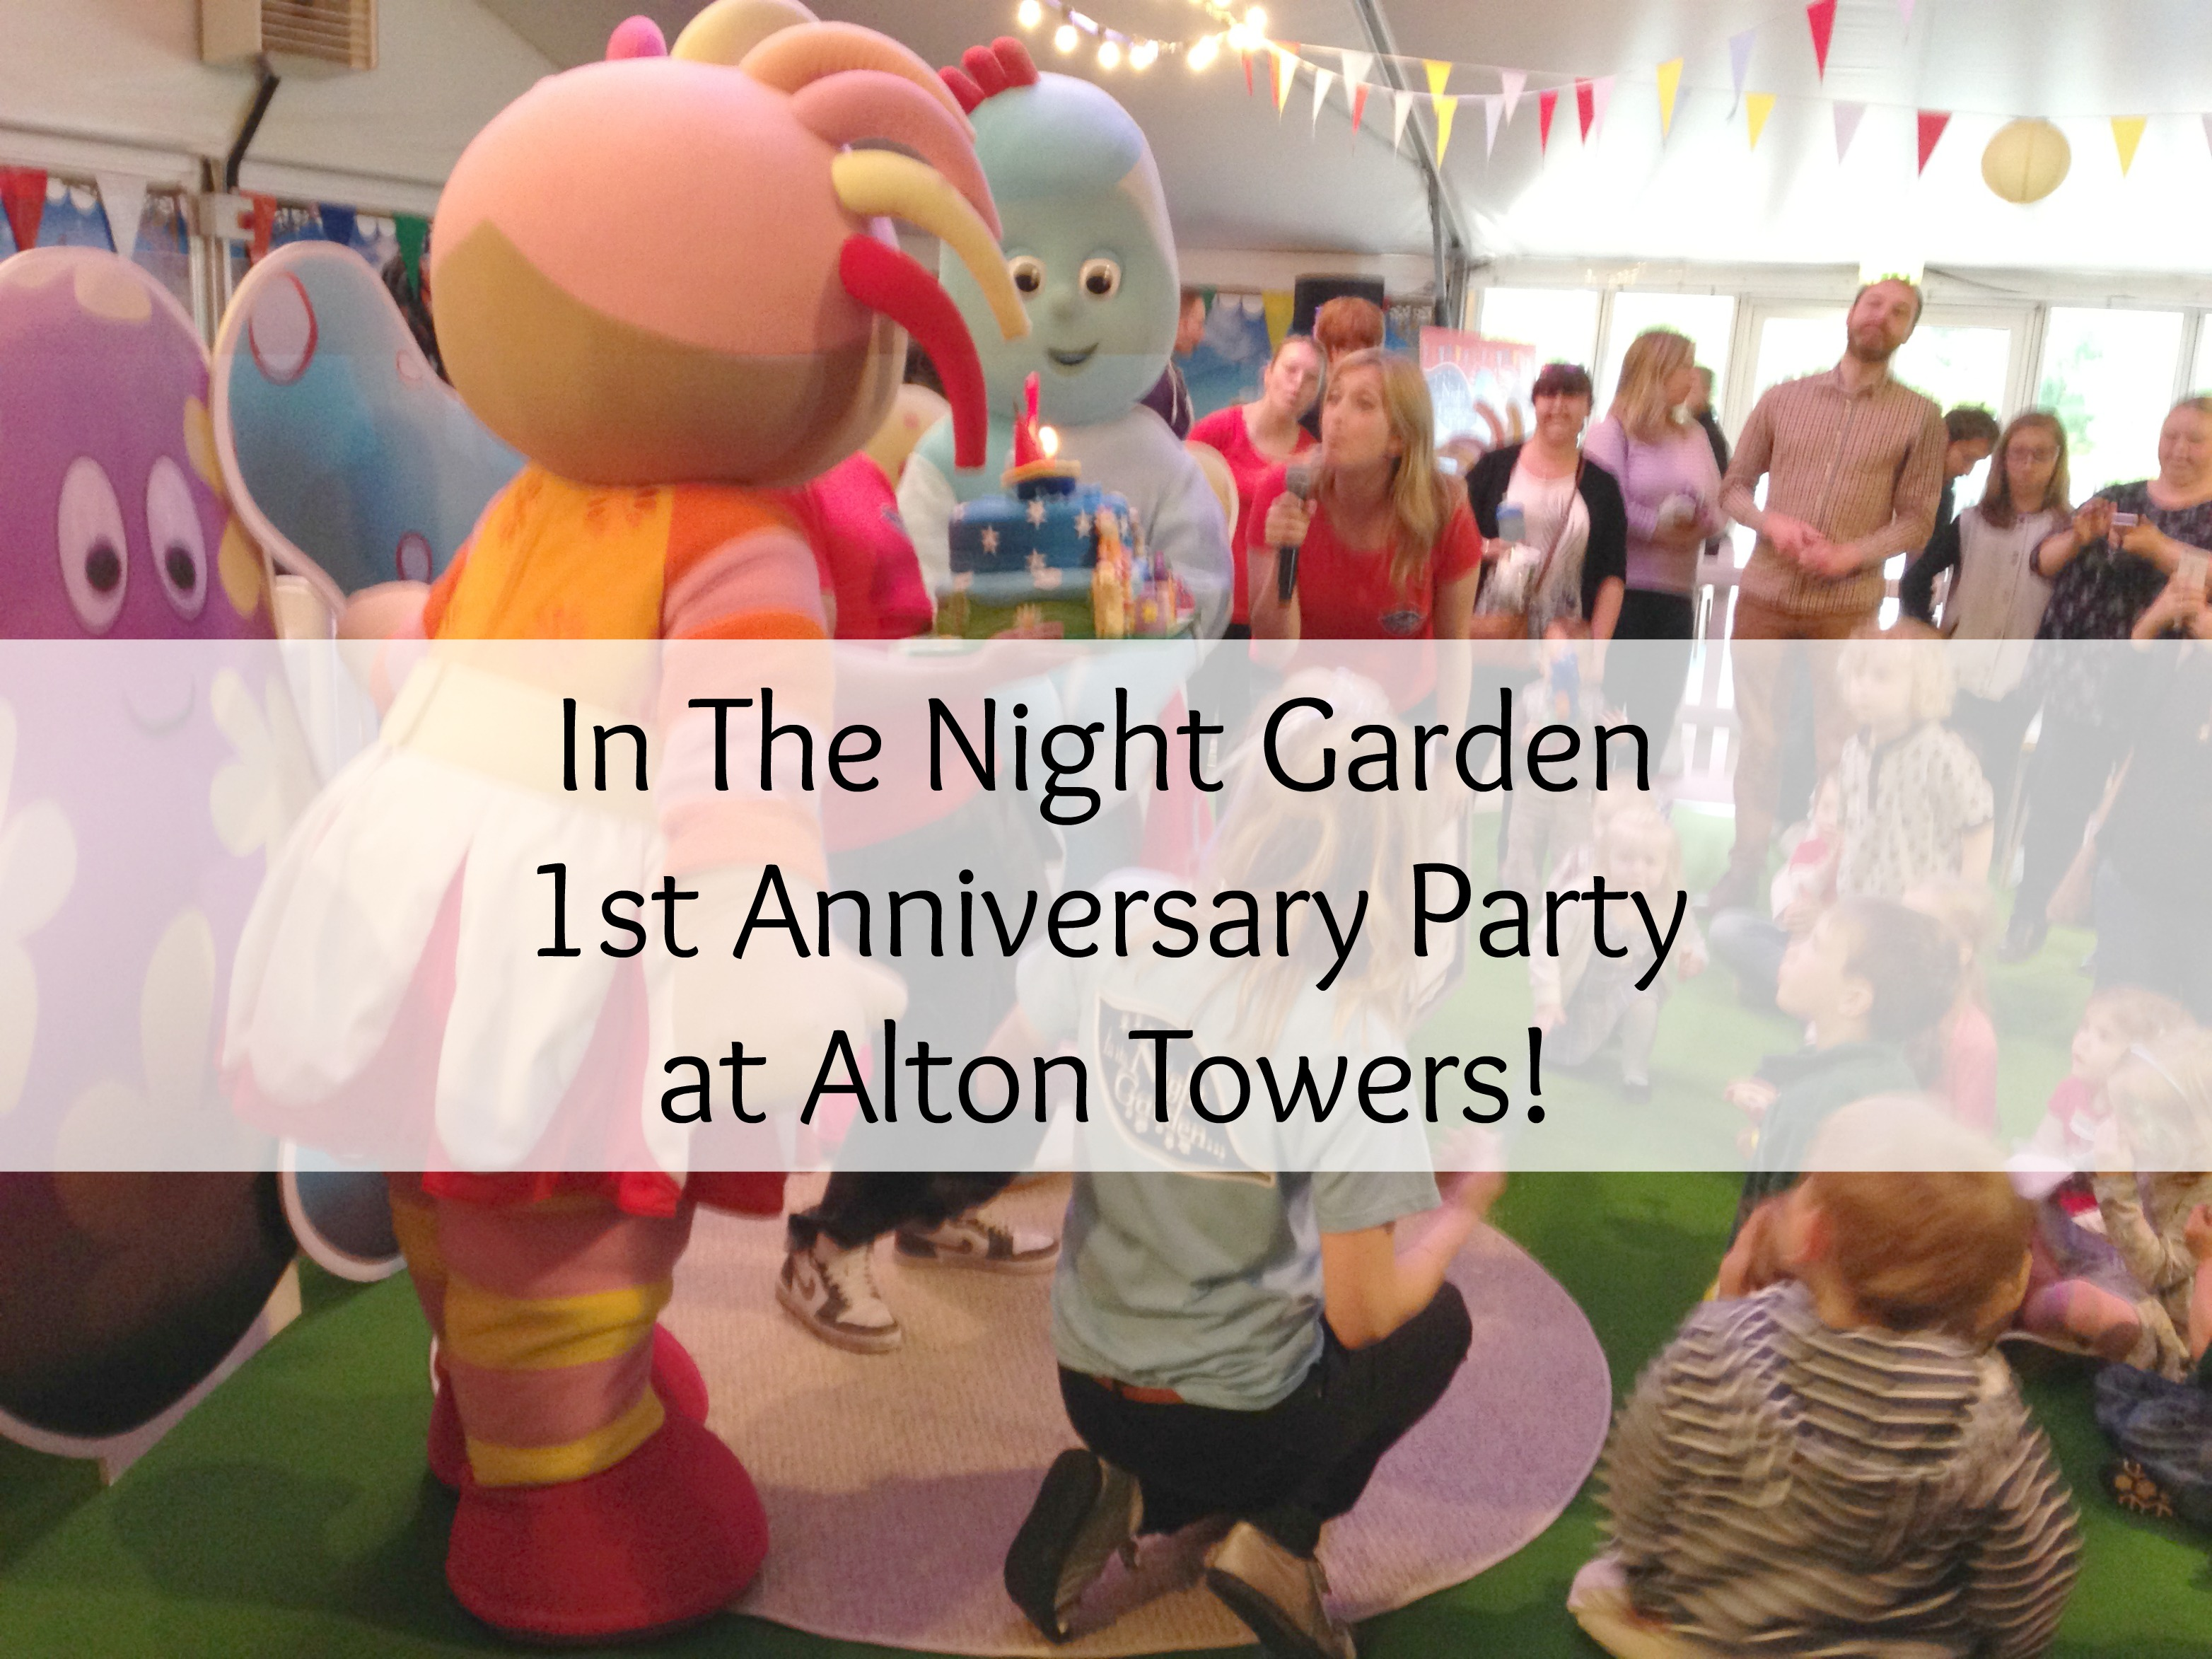 In The Night Garden at Alton Towers - www.mamamim.com